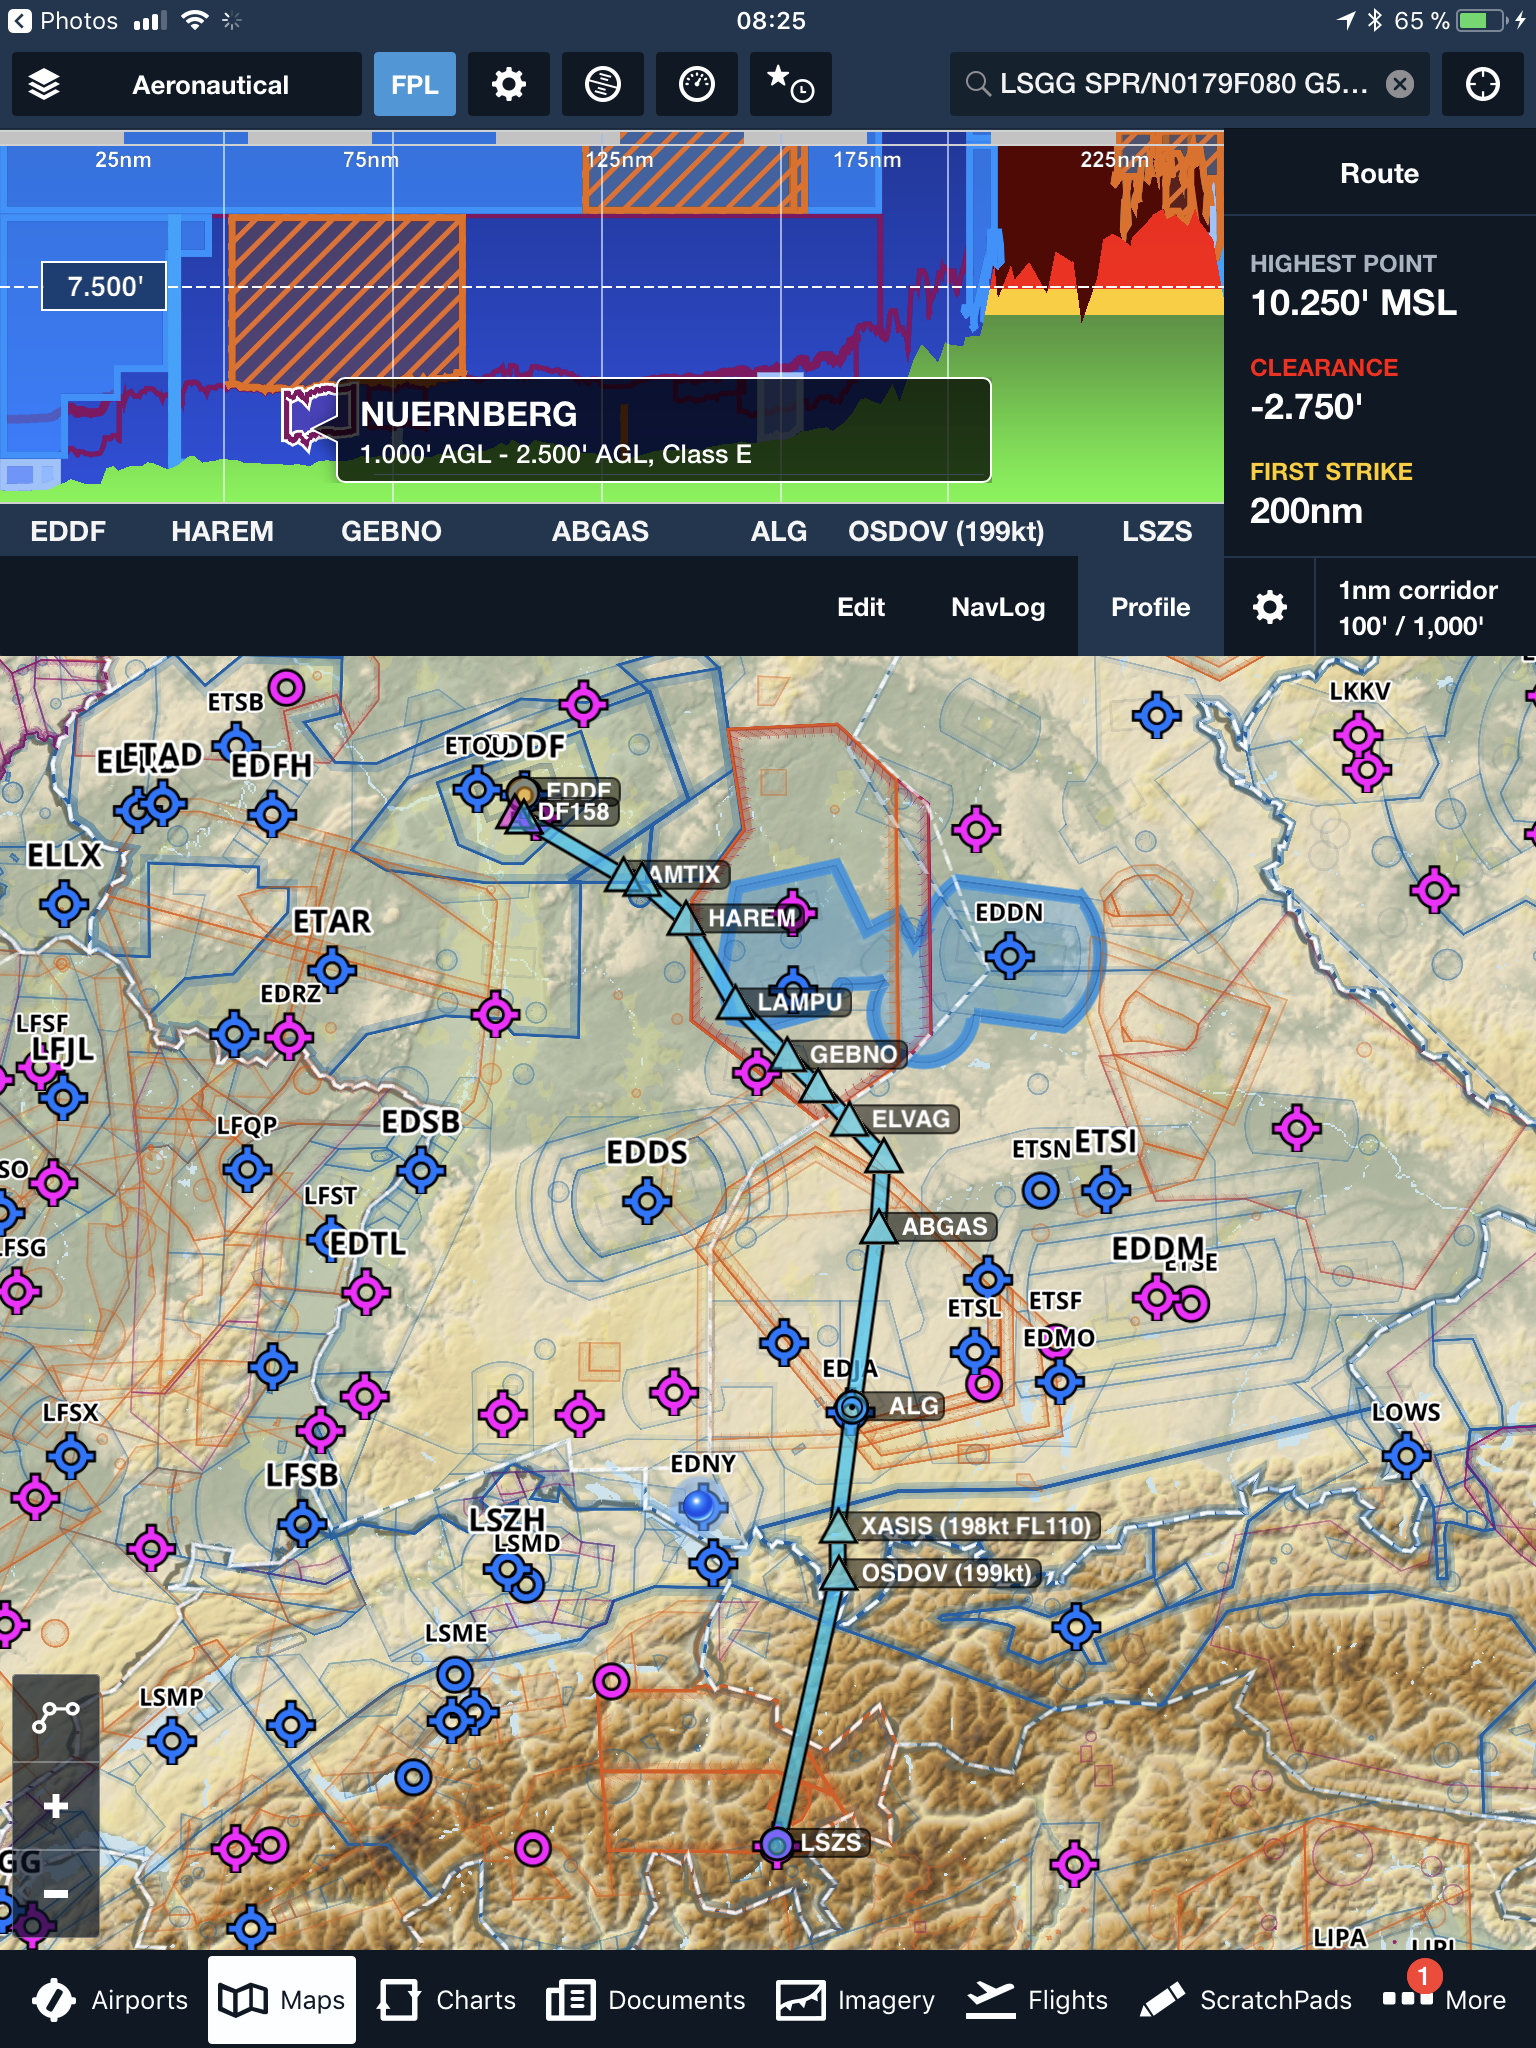 foreflight airspace profile with planned route on mappng